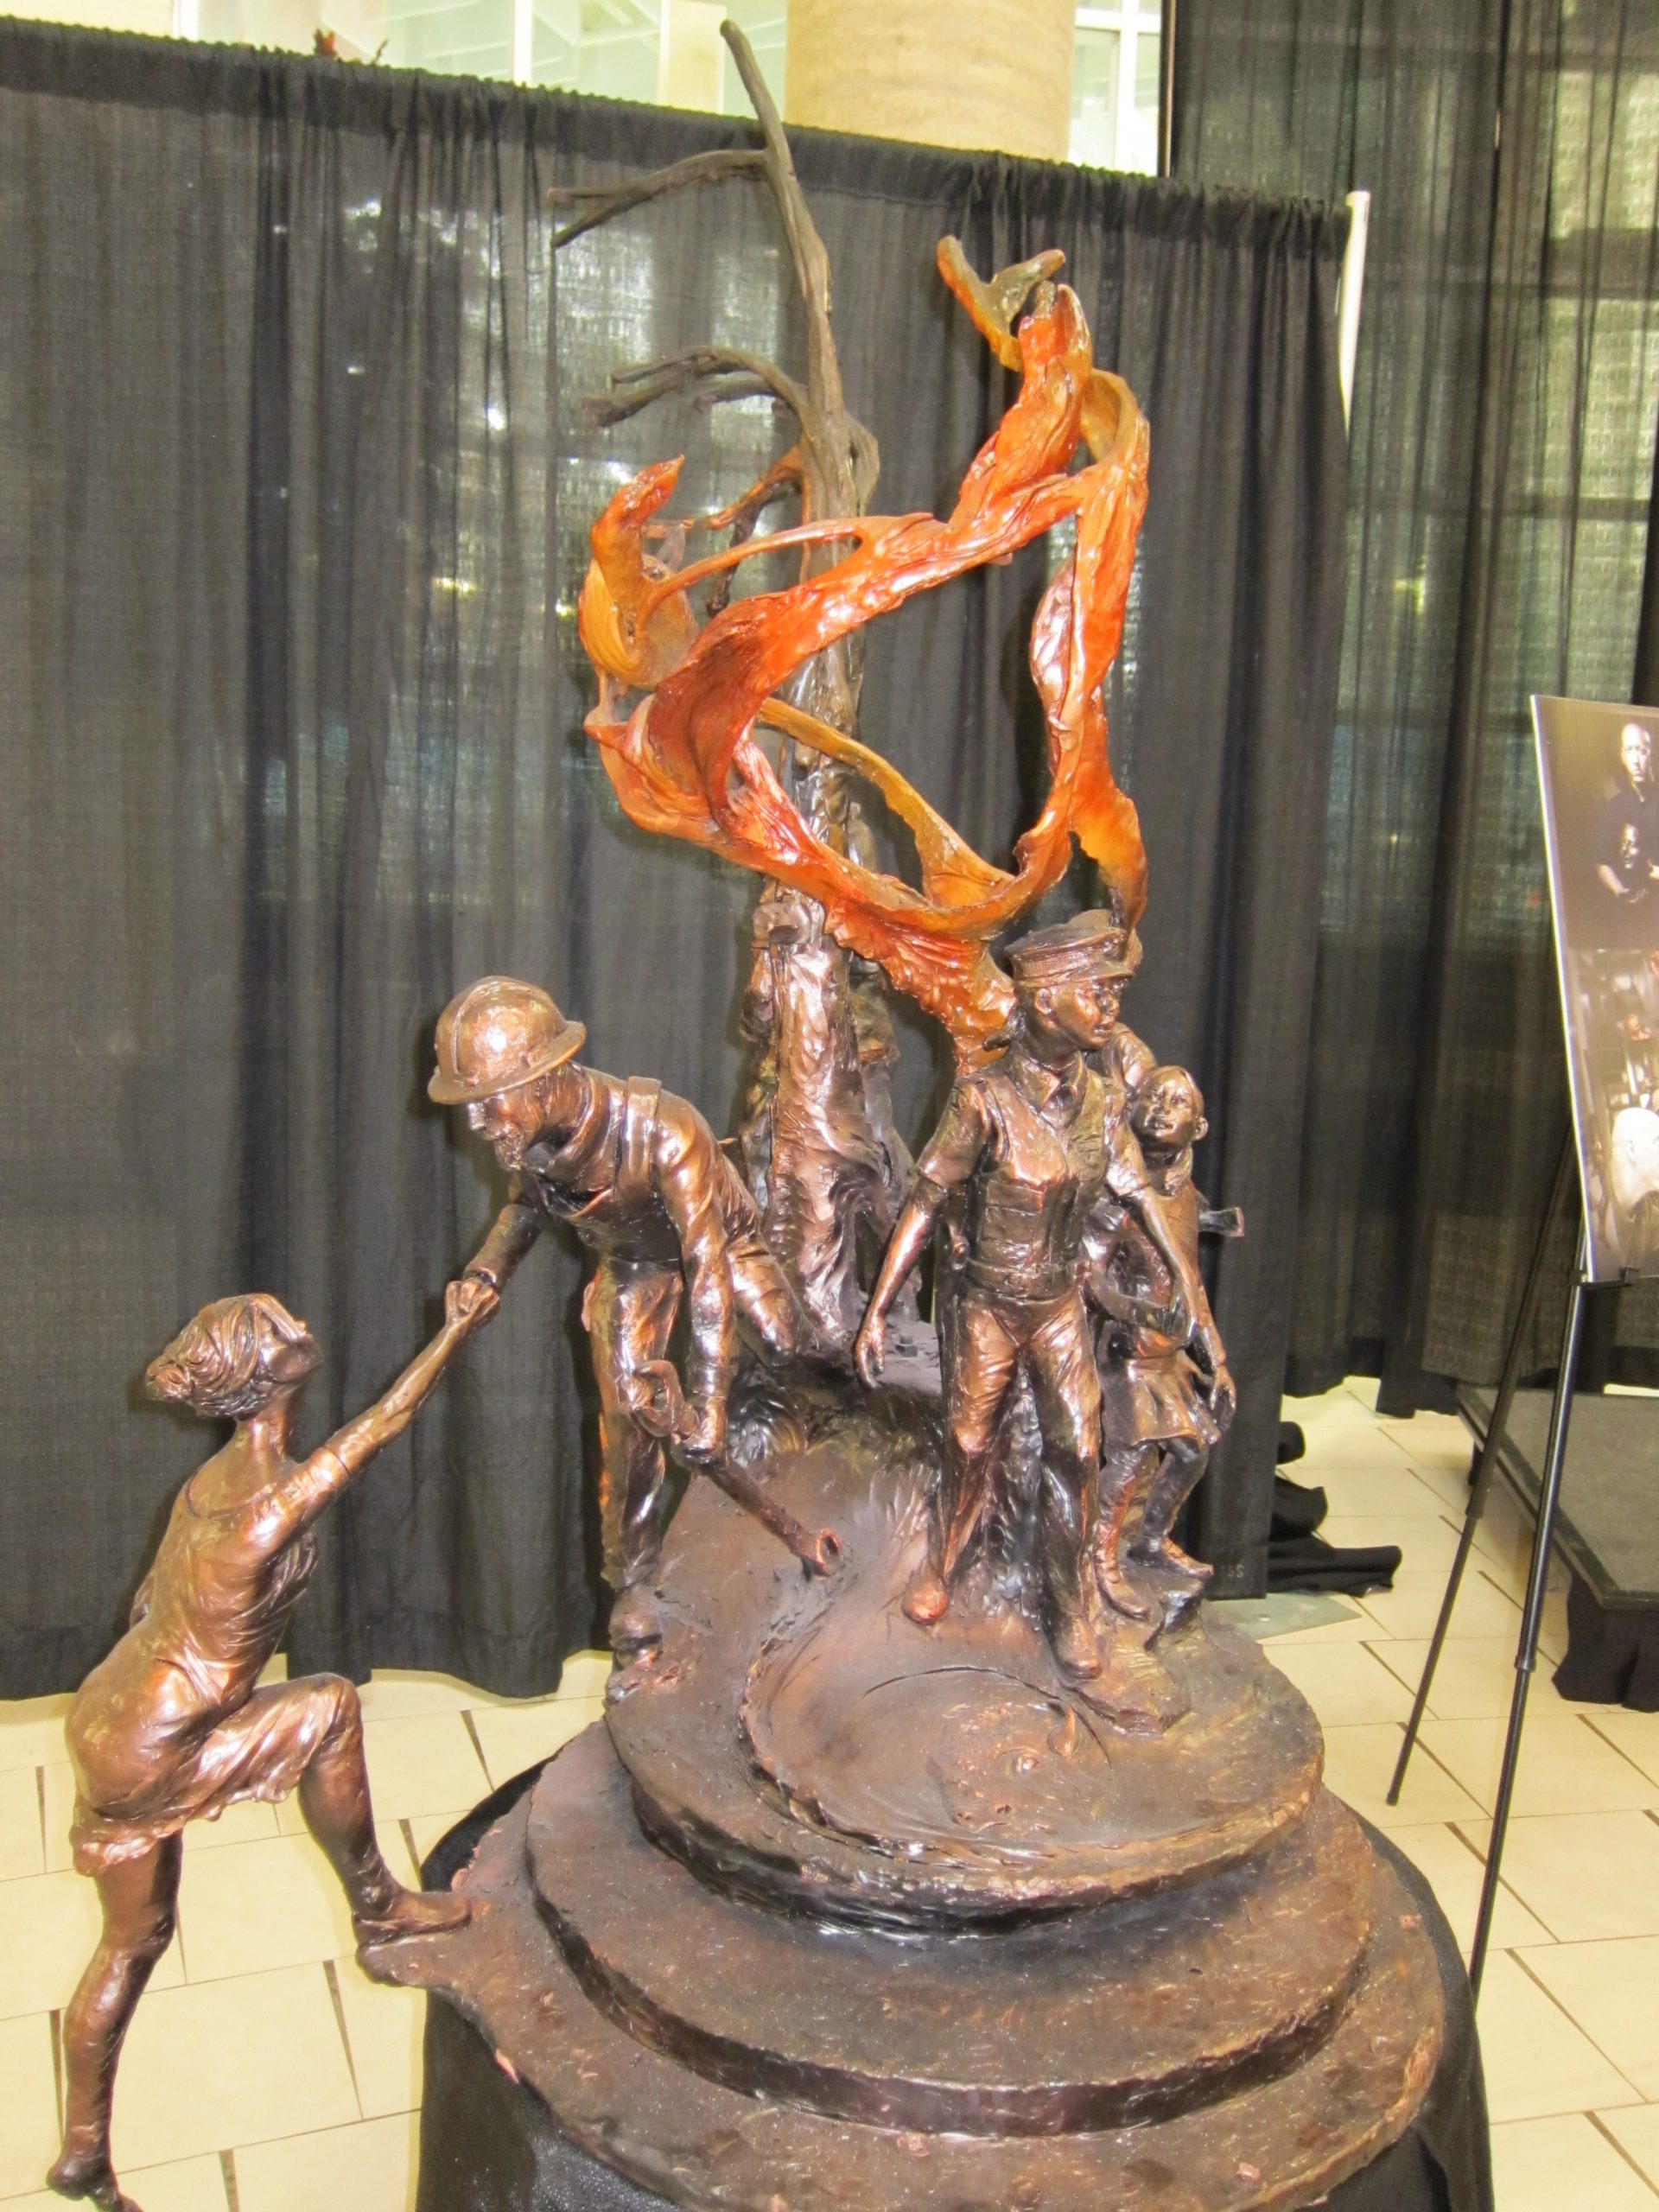 Memorial Park and First Responders Sculpture Getting Closer to Fruition